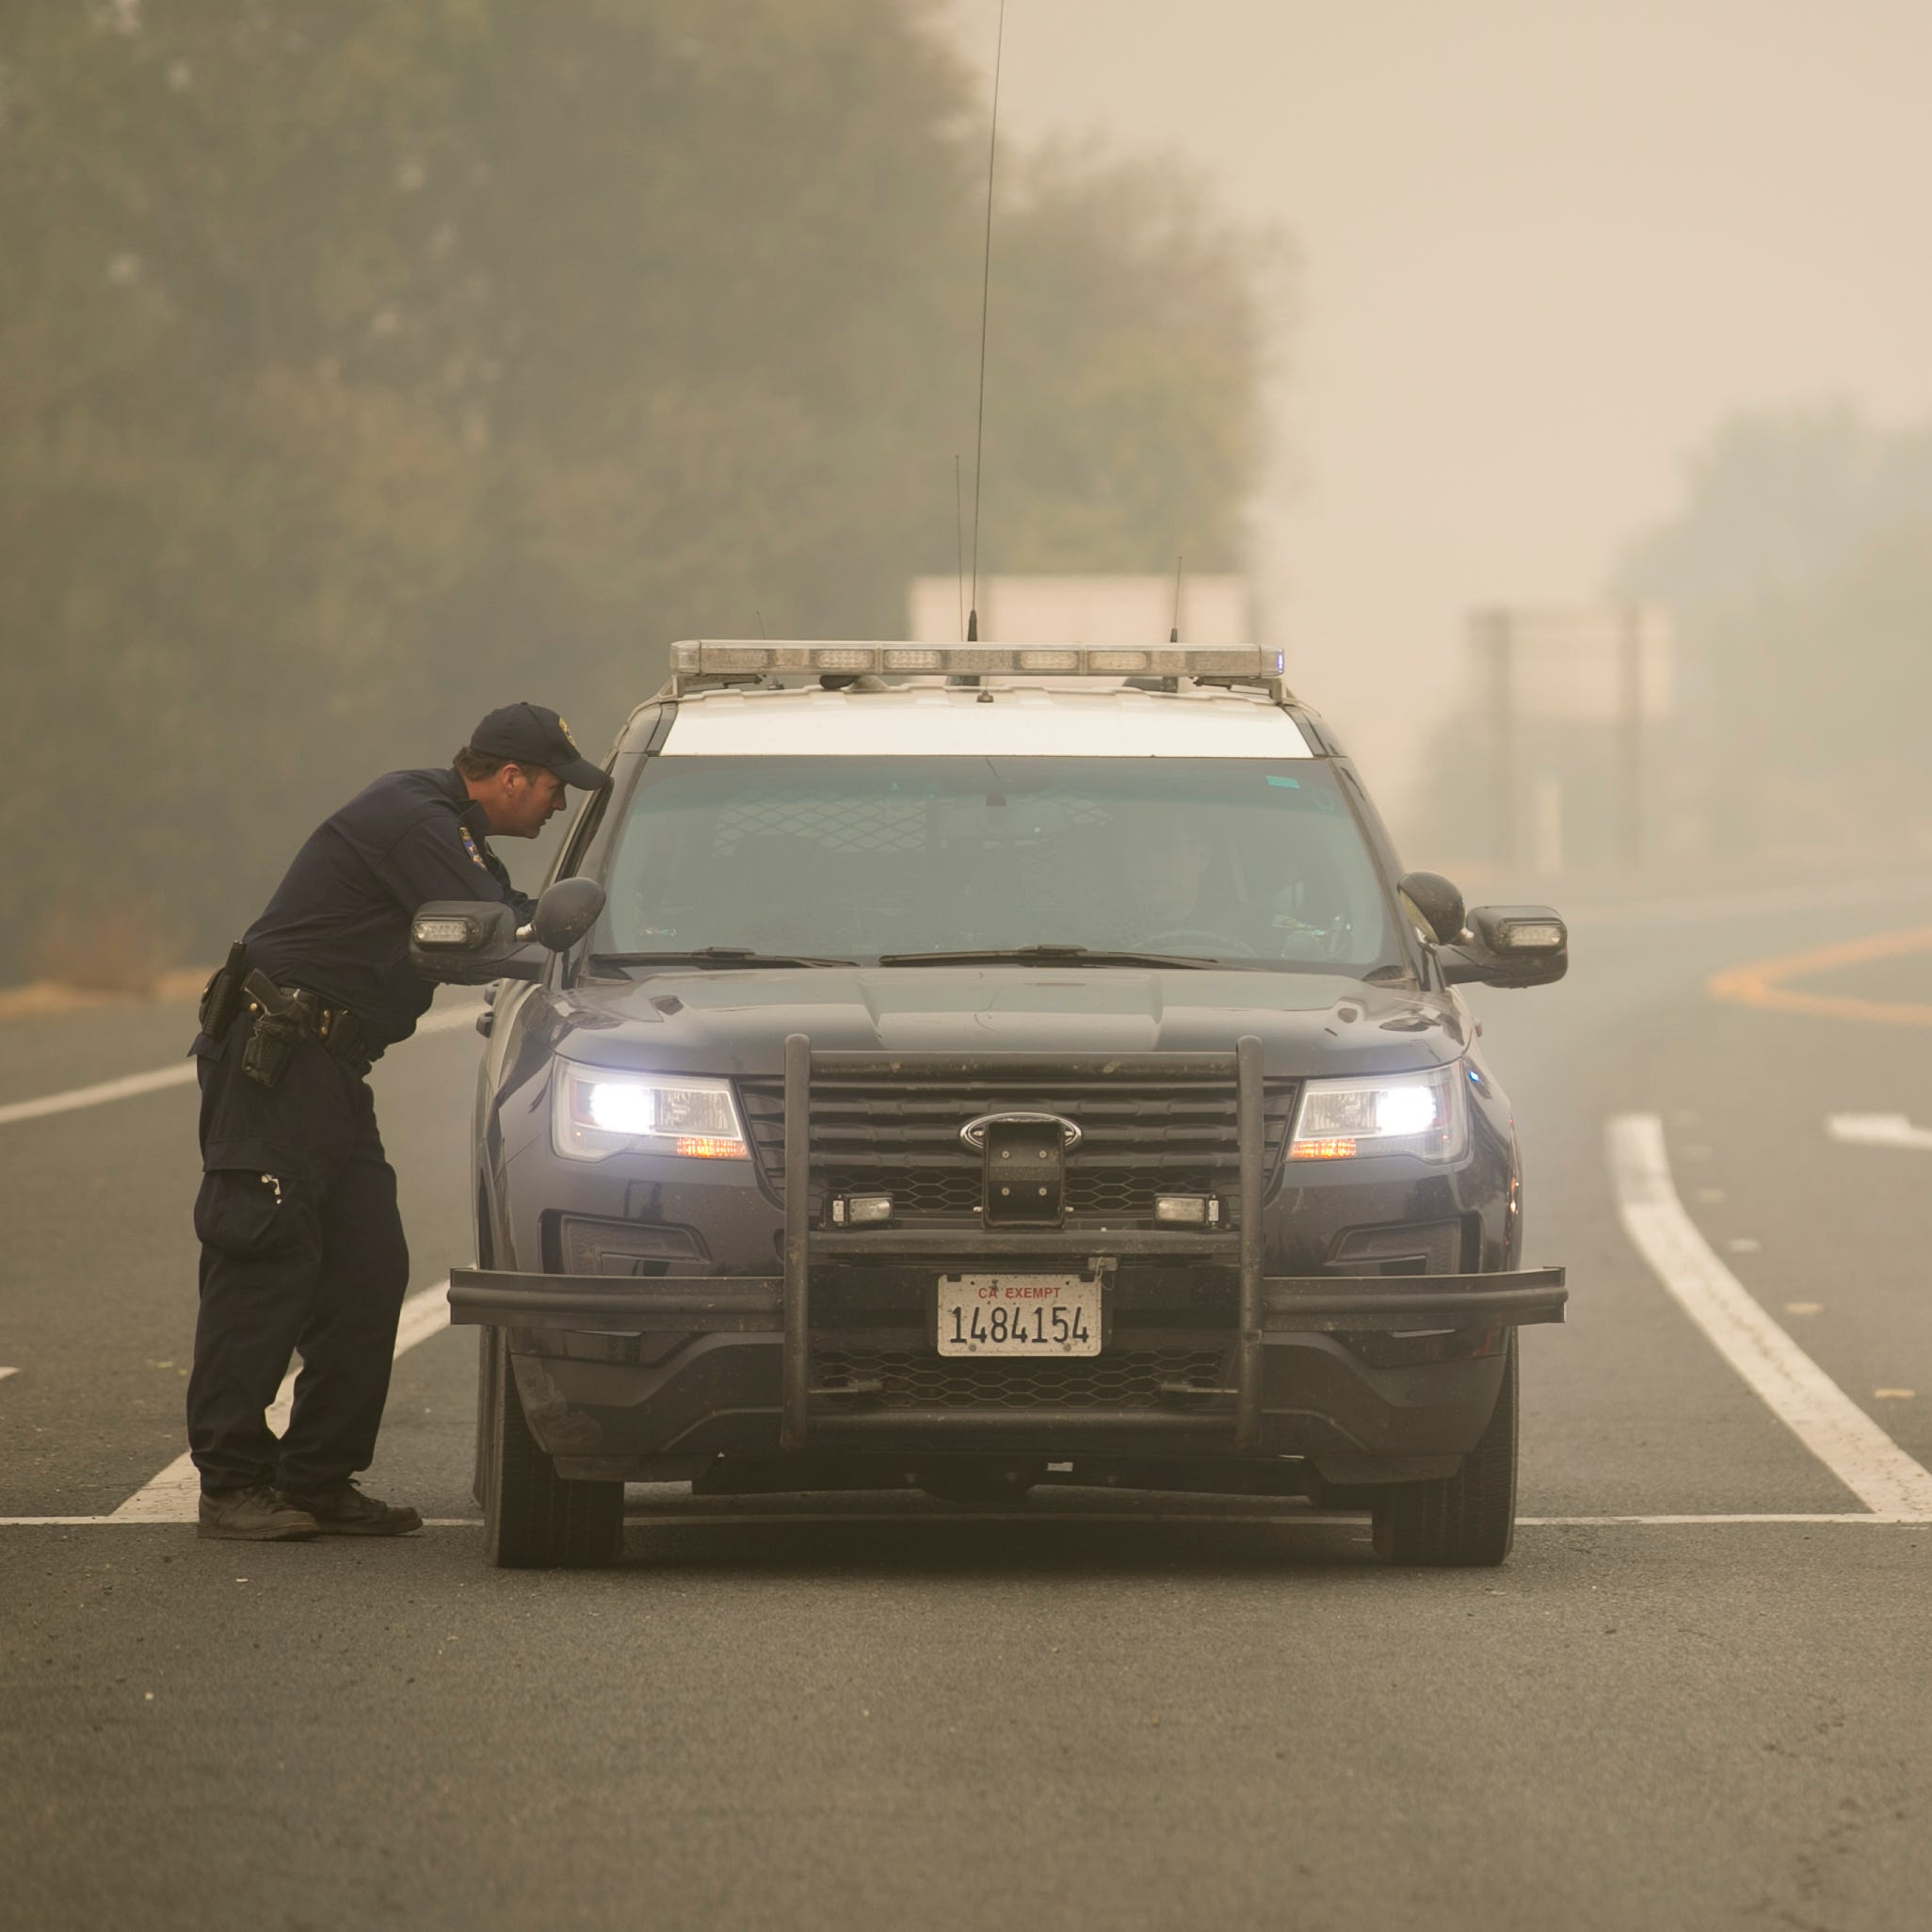 Camp Fire shooting: Officers kill wanted man inside California wildfire evacuation zone